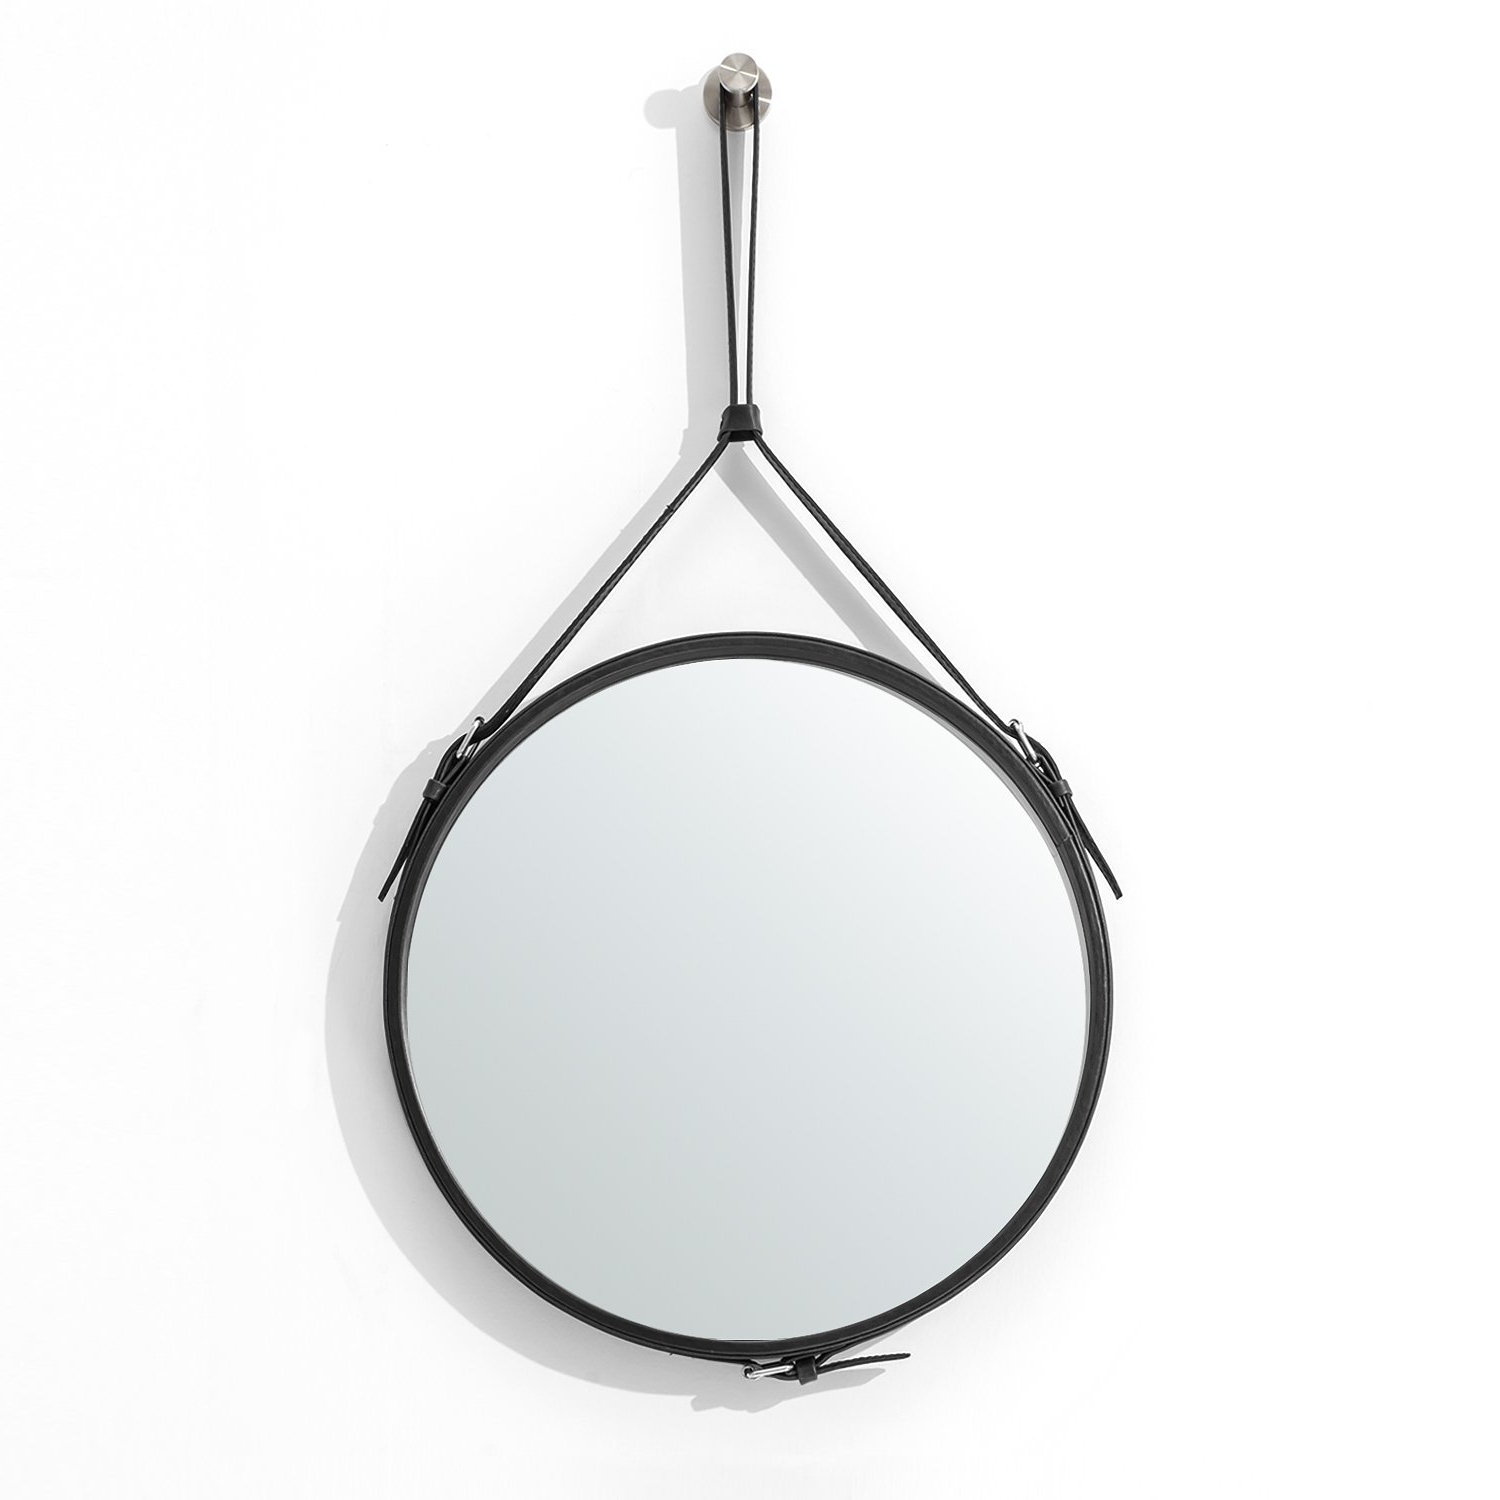 Hanging Wall Mirrors Within Best And Newest Ranslen Decorative Hanging Wall Mirror 15 Inch Round Rustic Wall Mirror  With Hanging Strap For Bathroom/bedroom/living Room Home Decor (Black) (Gallery 4 of 20)